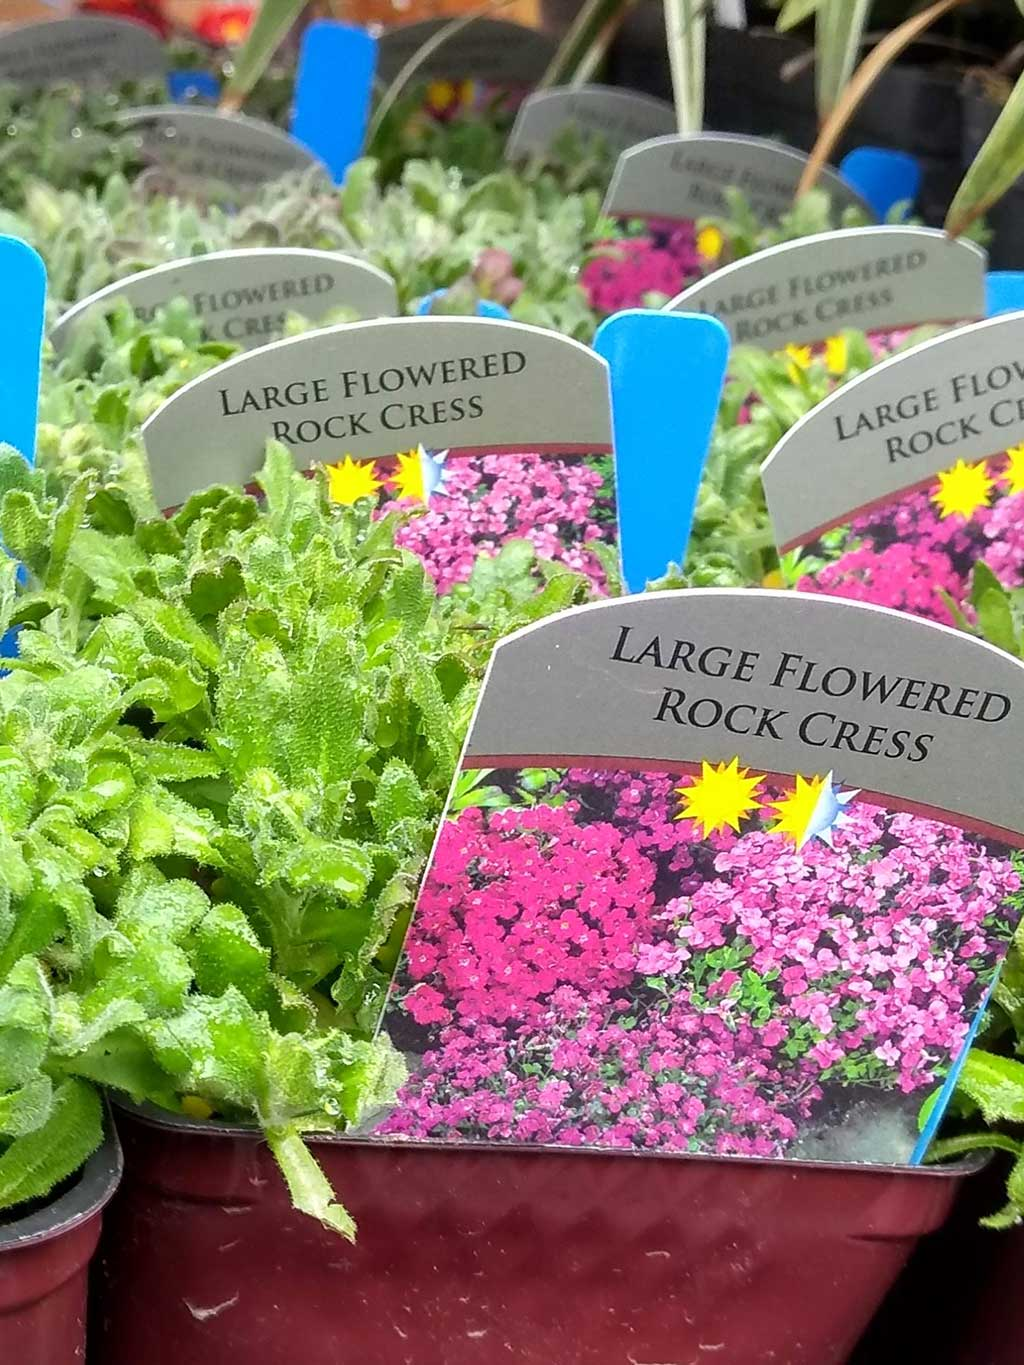 Large Flowering Rock Cress